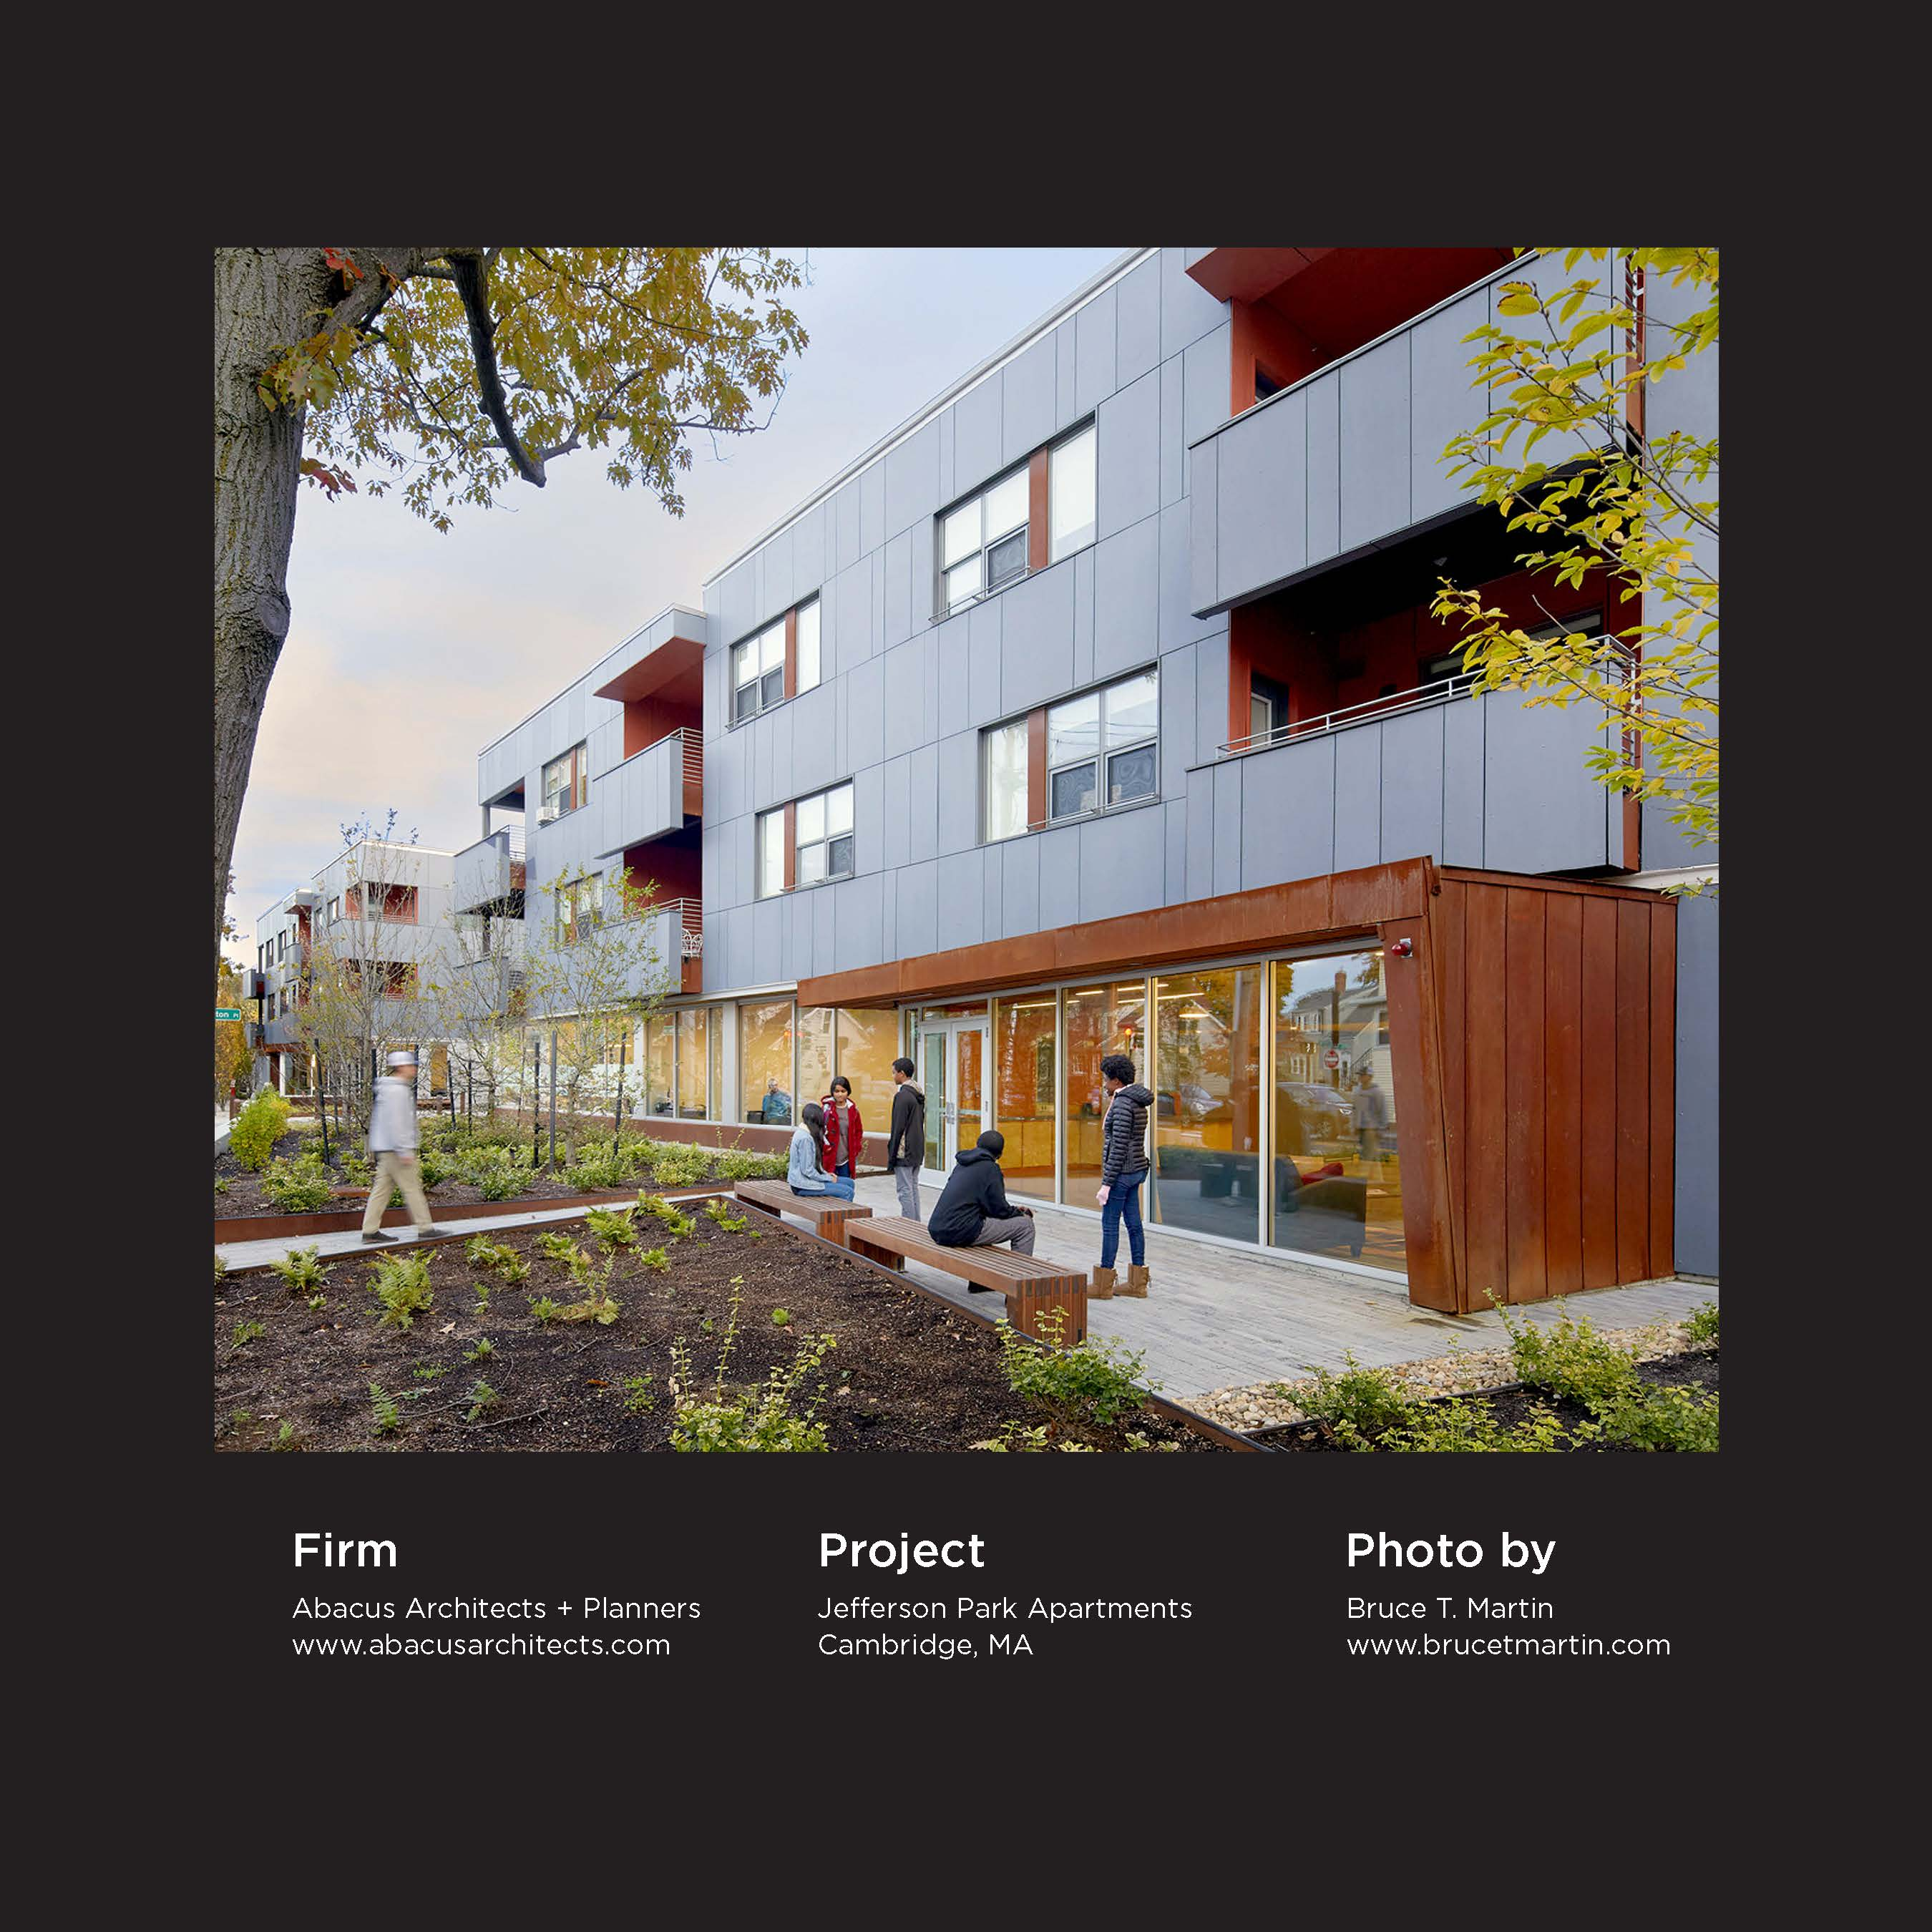 Abacus Architects + Planners